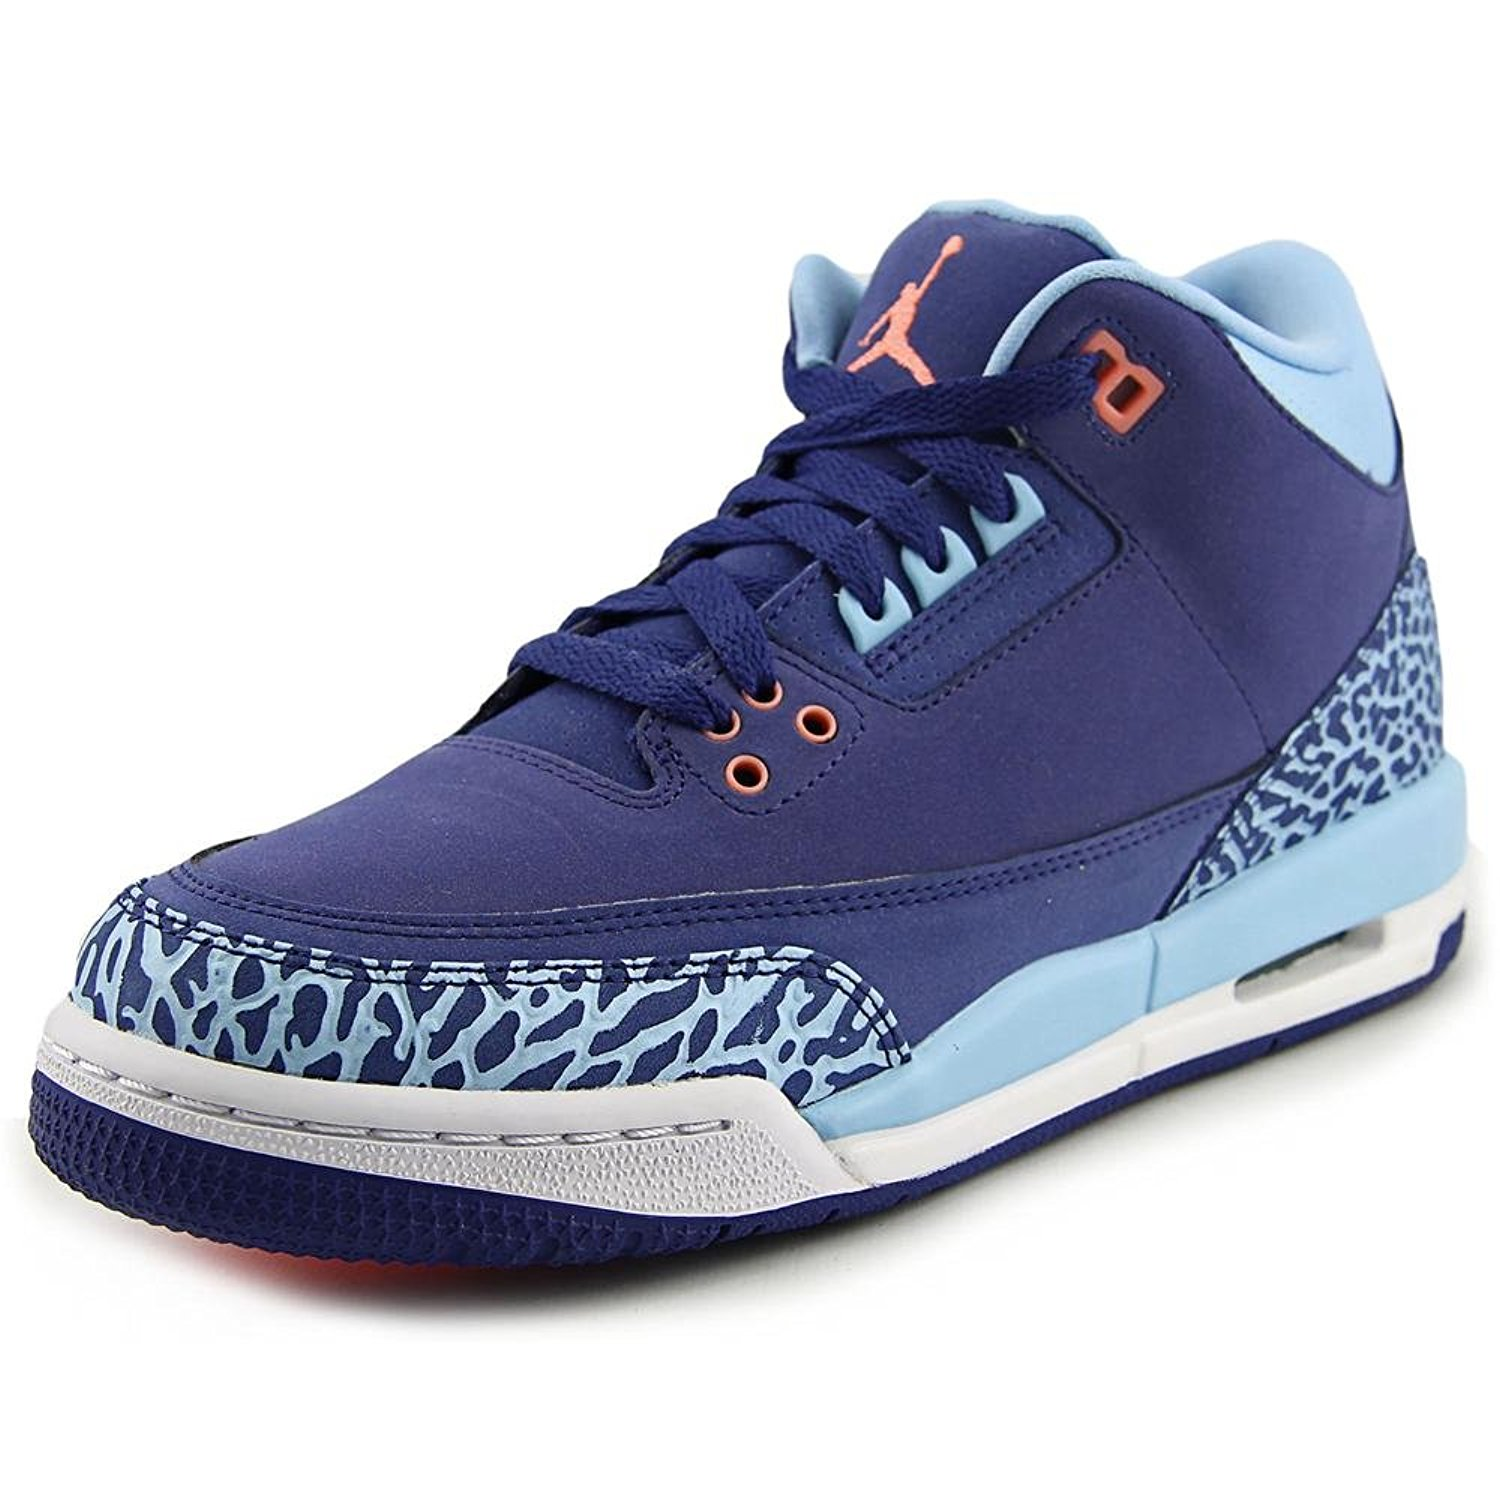 lowest price 86da1 ec00e Get Quotations · Jordan Air Jordan 3 Retro GS Youth Round Toe Canvas Purple  Sneakers